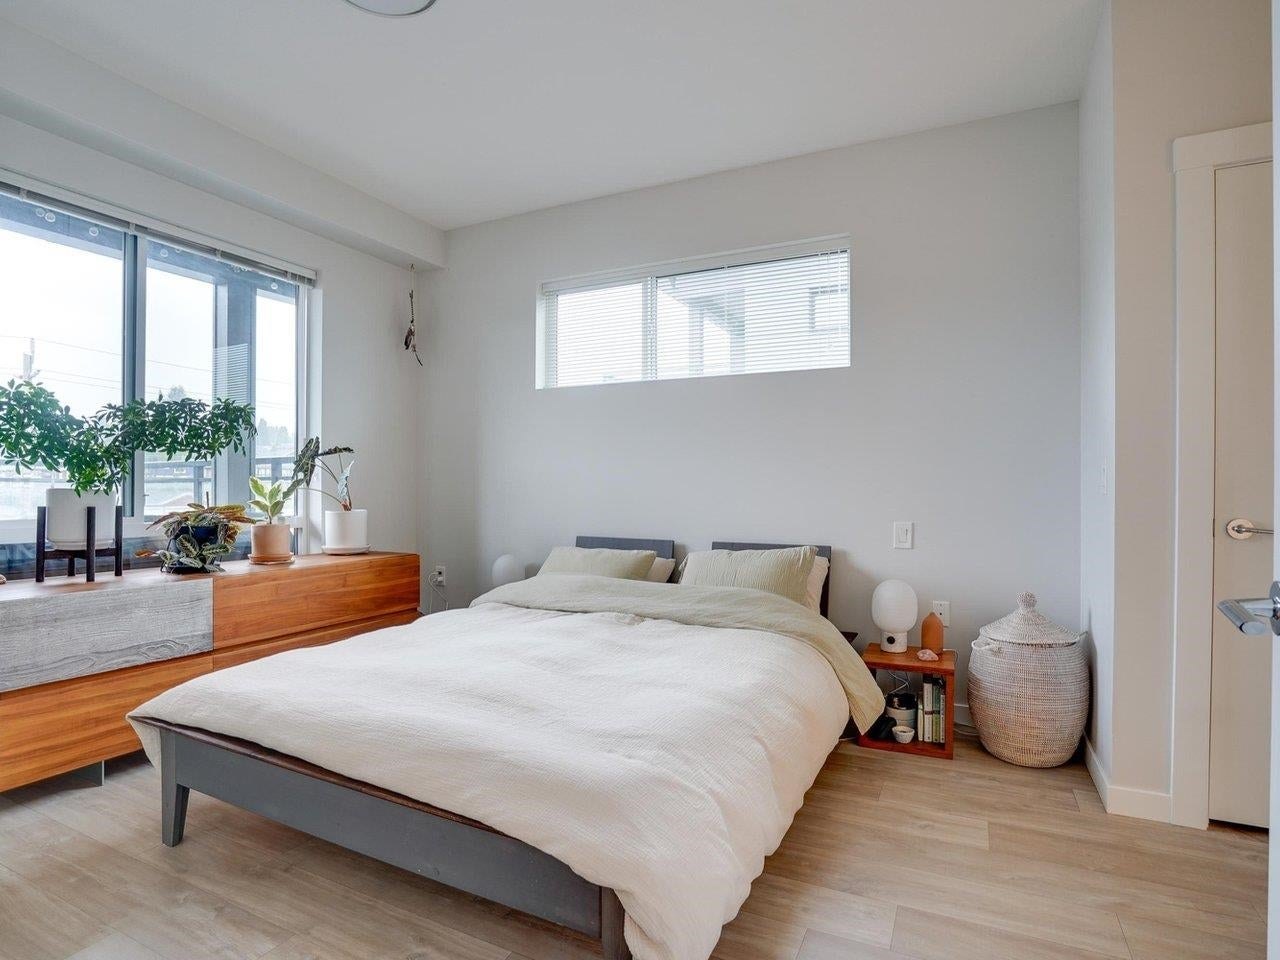 409 615 E 3RD STREET - Lower Lonsdale Apartment/Condo for sale, 2 Bedrooms (R2621616) - #11